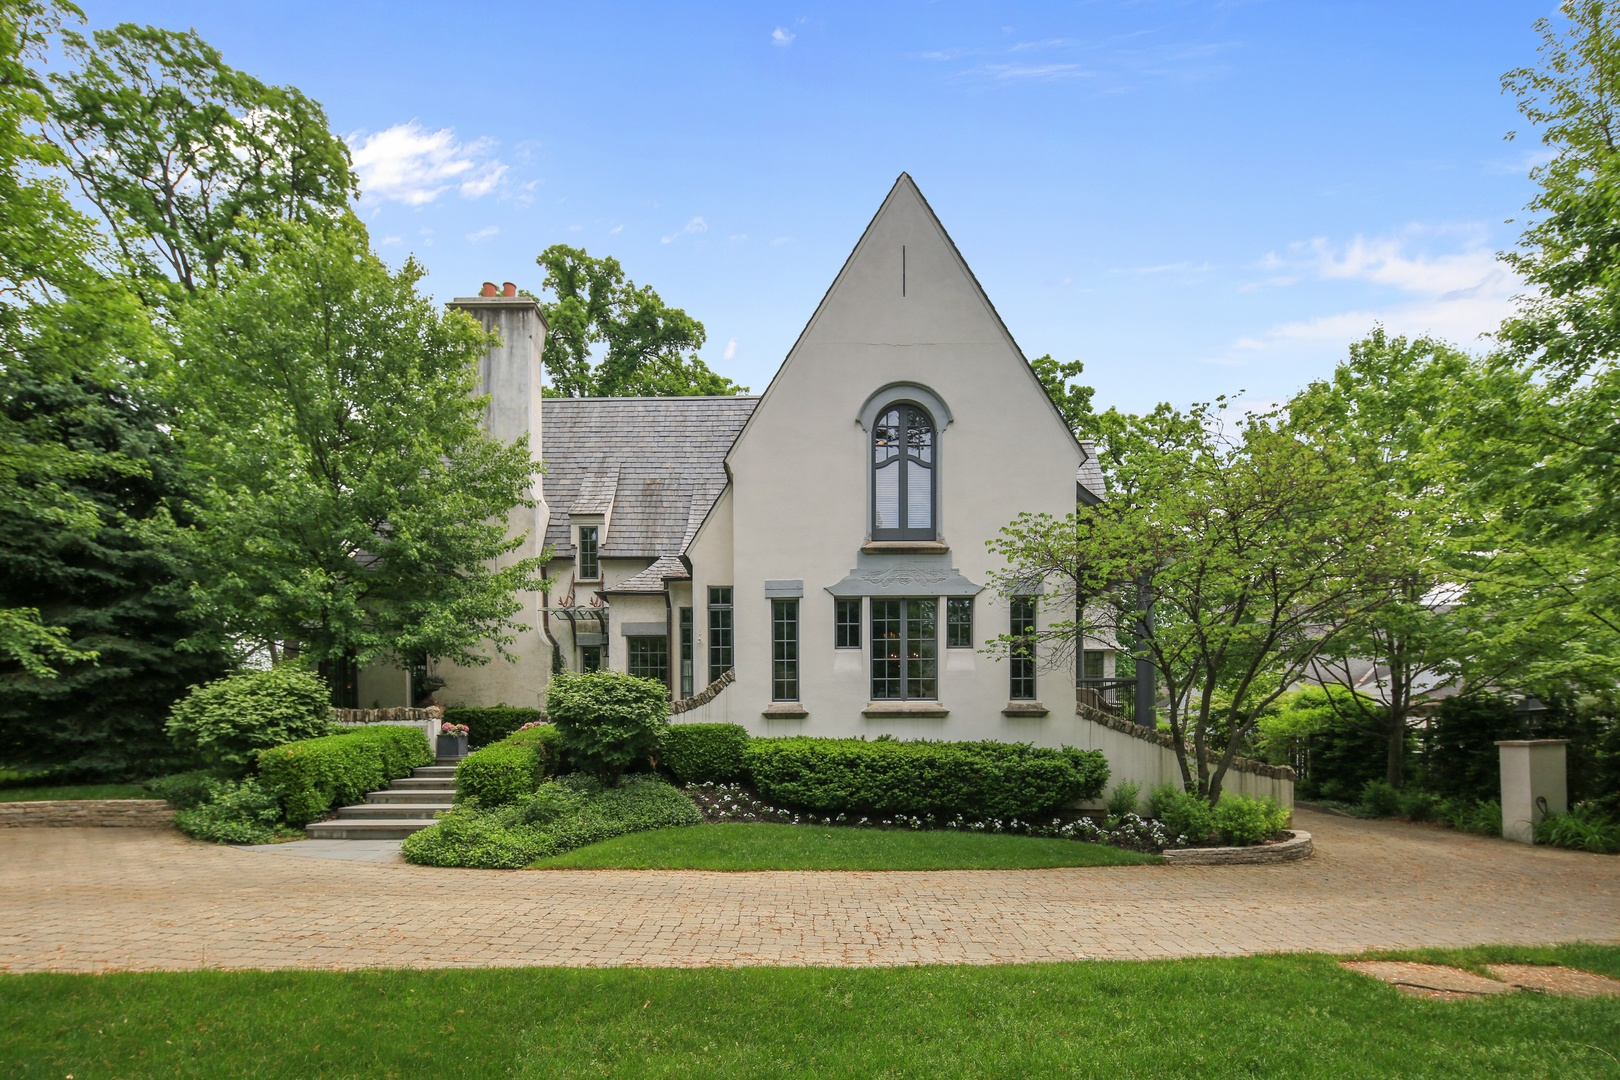 Property for sale at 721 Taft Road, HINSDALE,  Il 60521